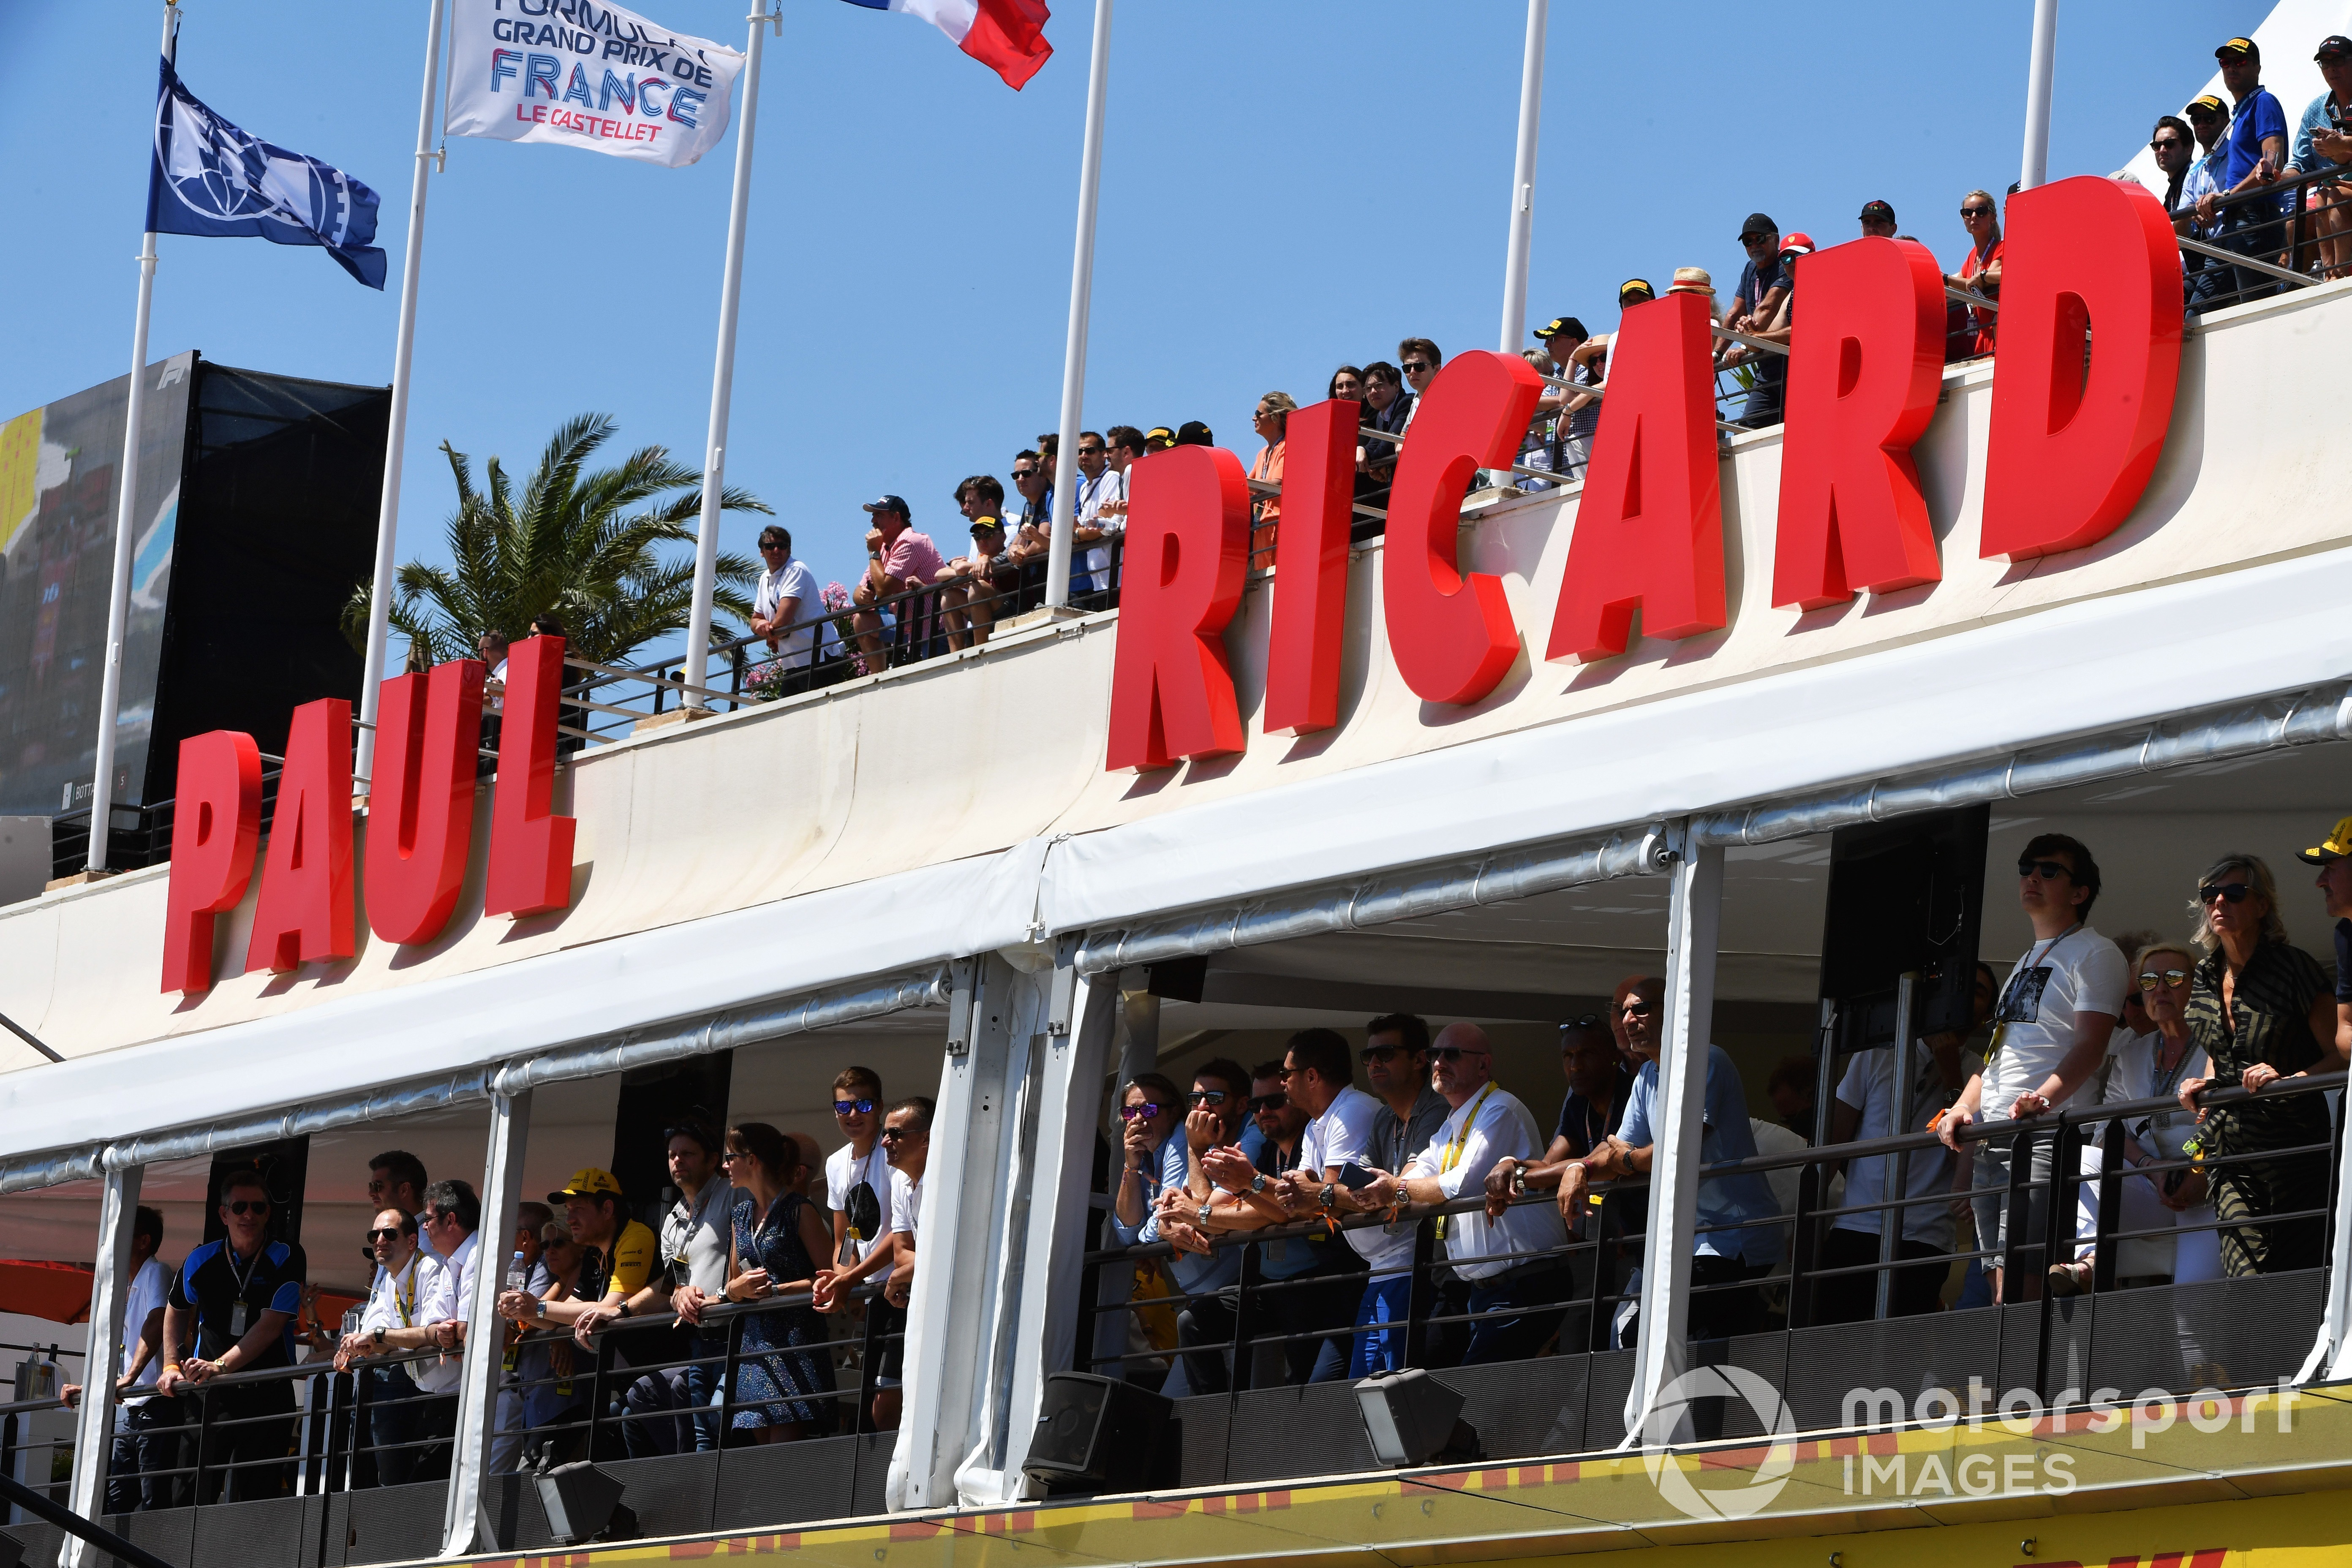 Fans watch qualifying from terraces, 2019 French GP